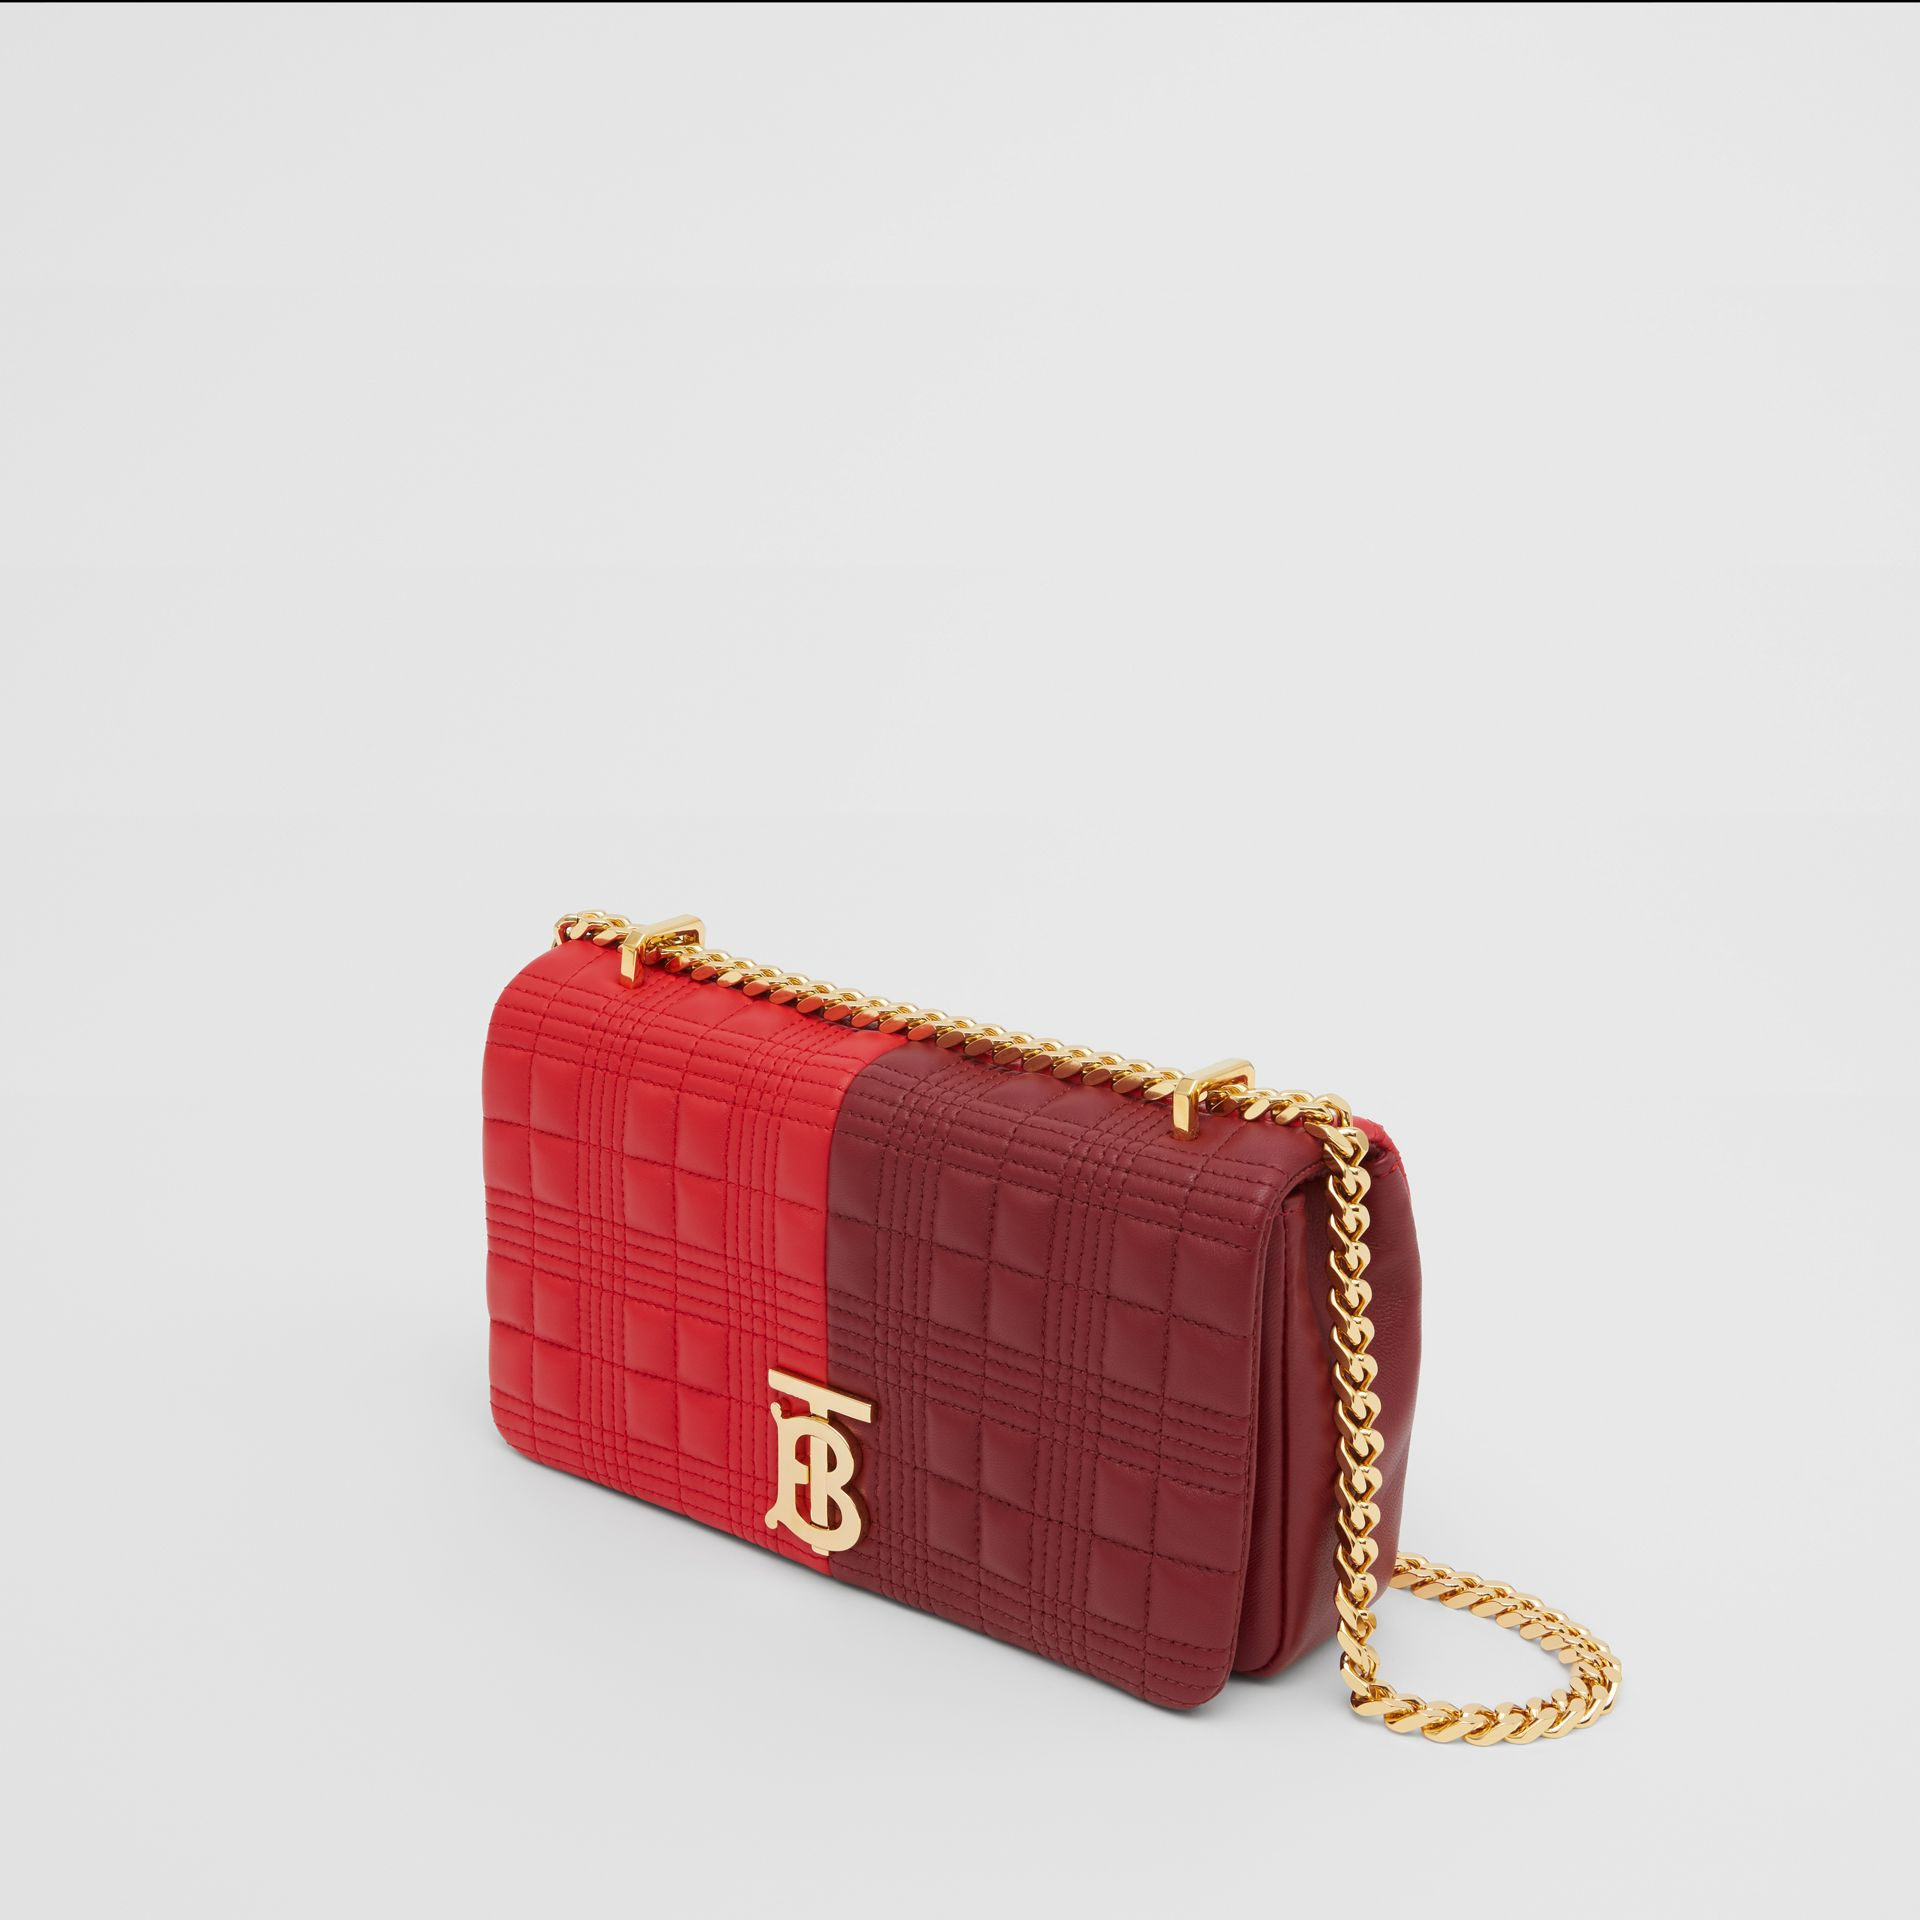 Small Quilted Colour Block Lambskin Lola Bag in Bright Red/burgundy - Women | Burberry - gallery image 2